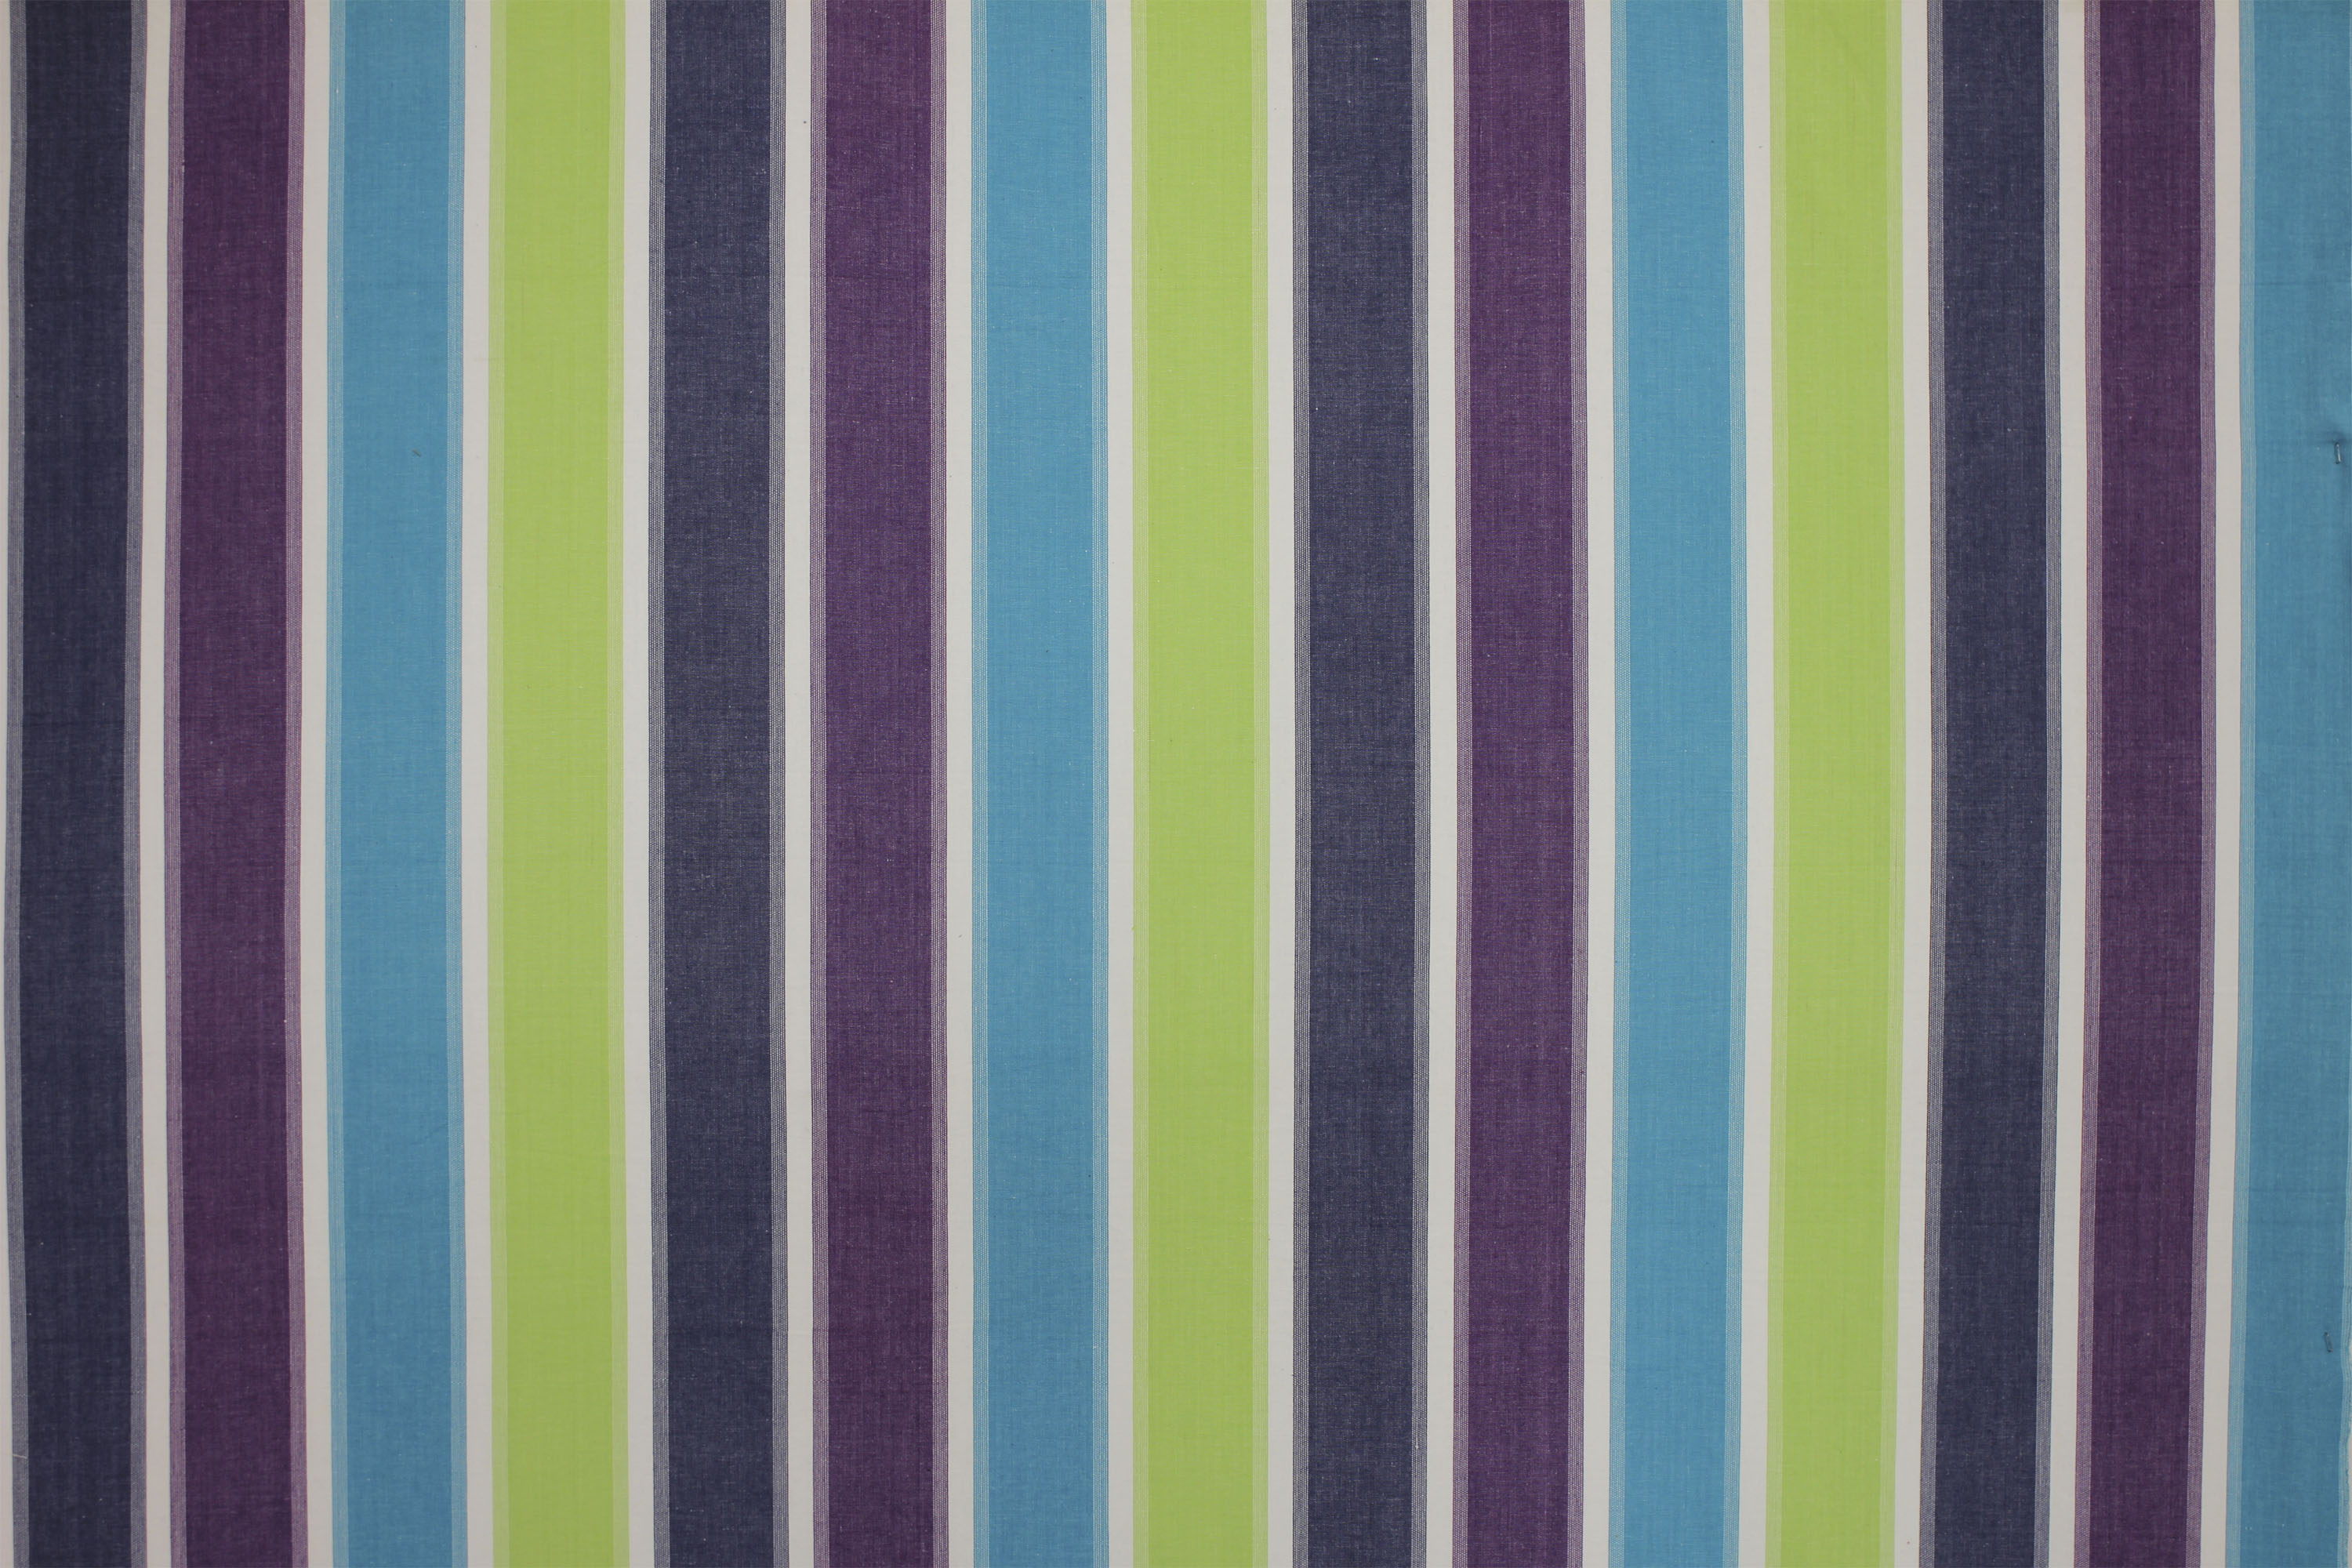 Wipe Clean Fabrics | Water Repellent Fabrics | Striped Coated Fabrics lime green, turquoise, white